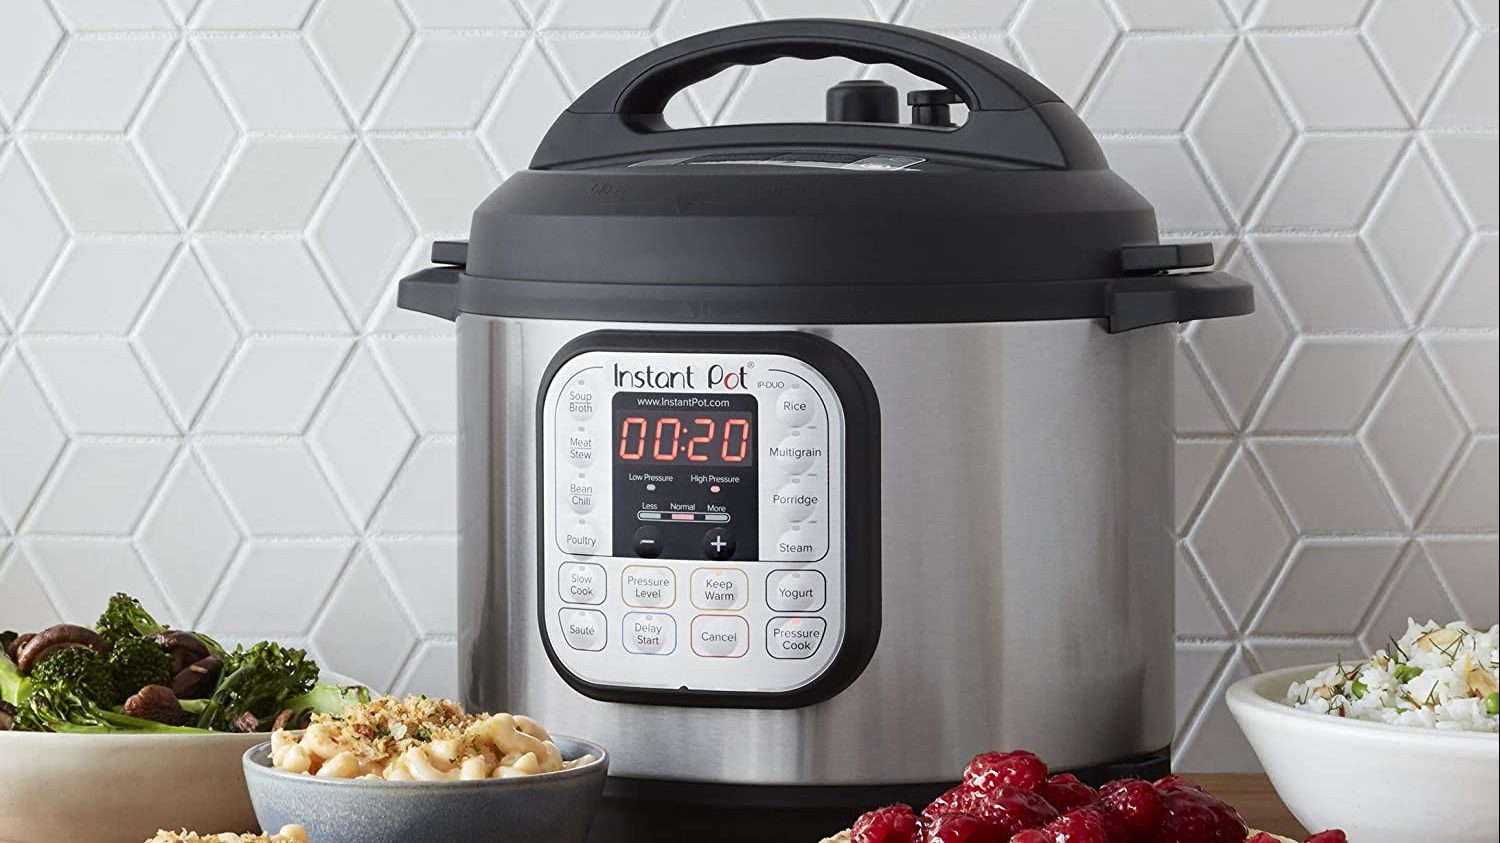 Today's Prime Day Instant Pot deals are awesome – but they're selling out fast